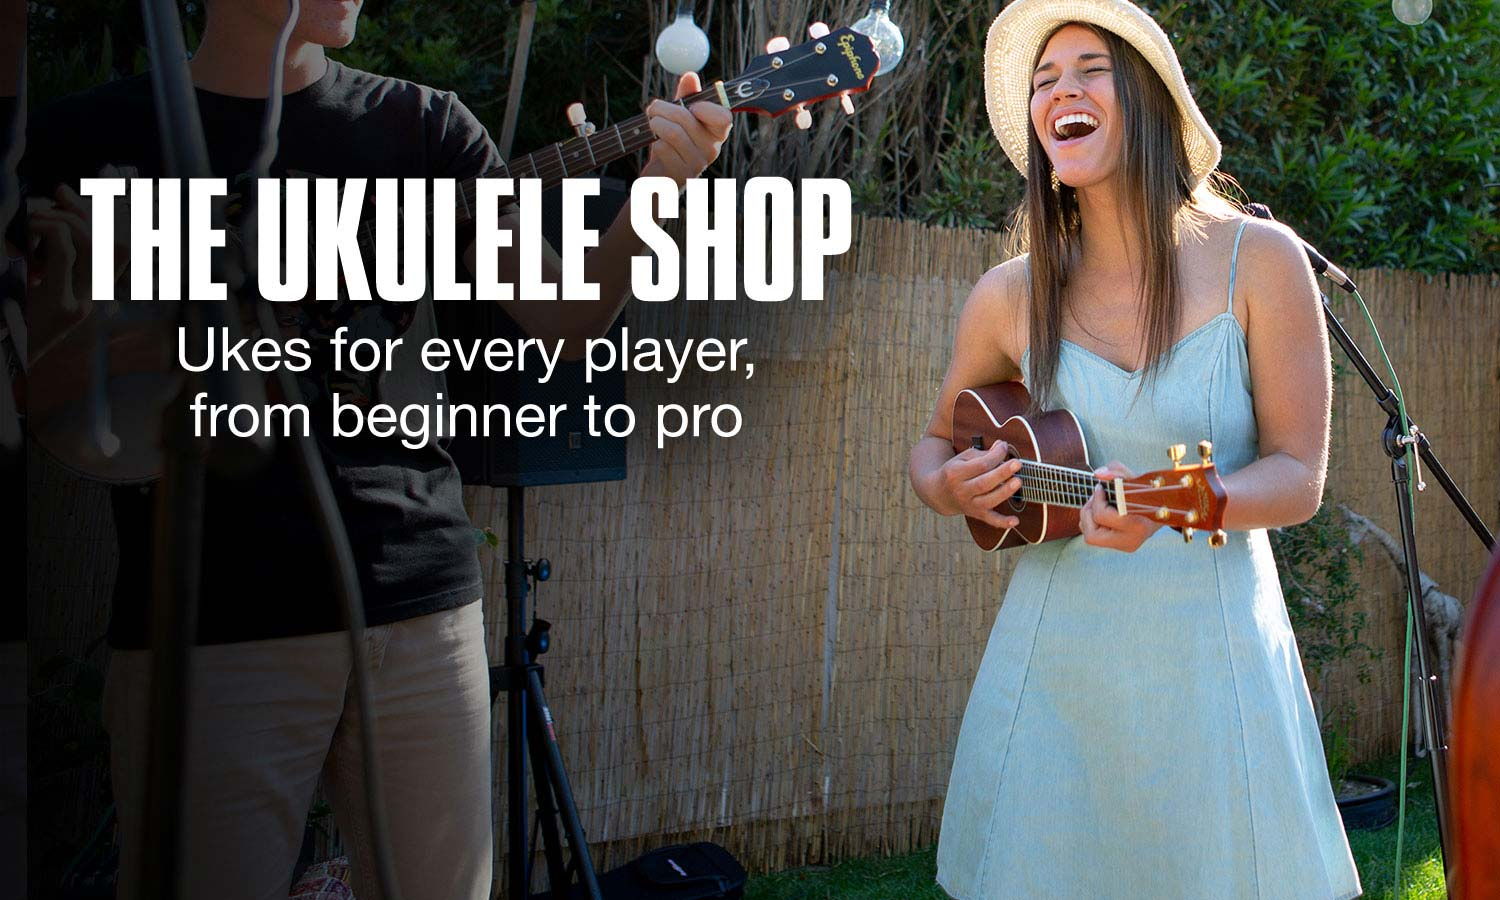 The Ukulele Shop. Ukes for every player, from beginner to pro.